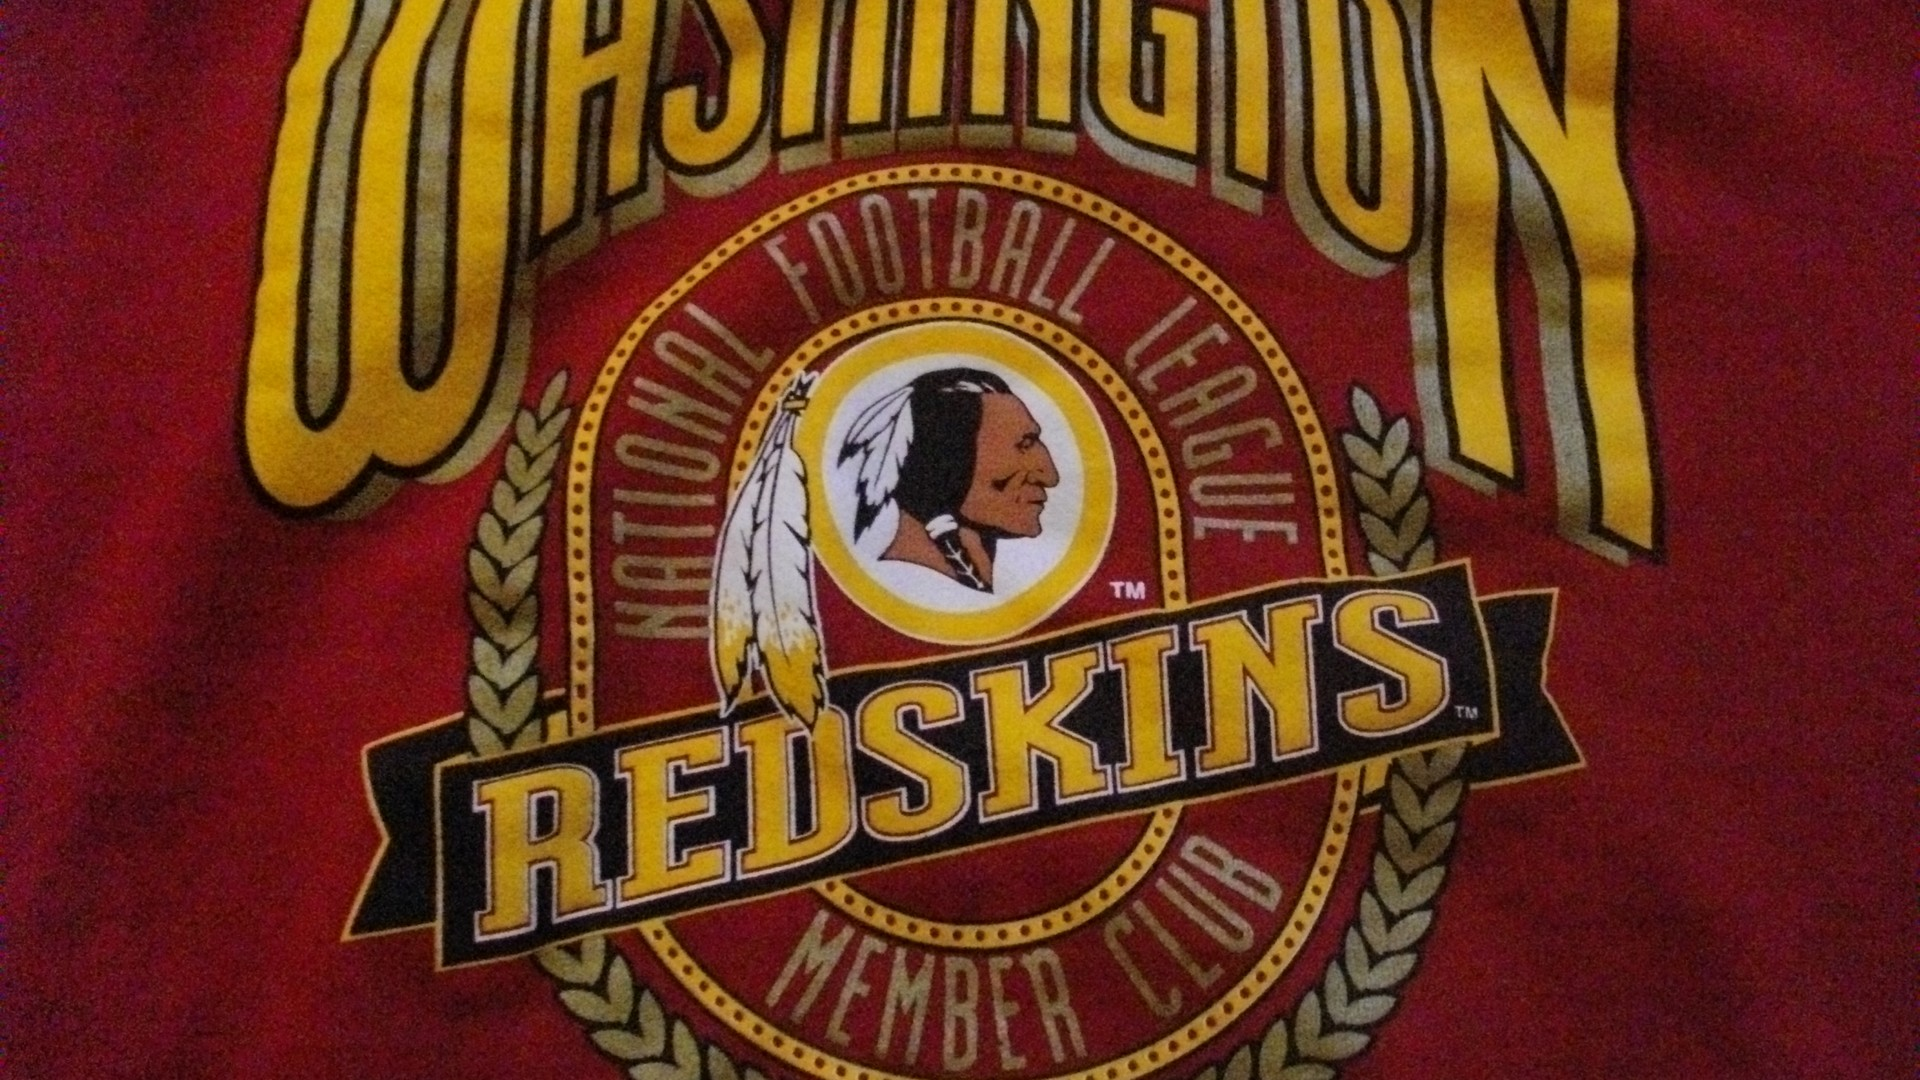 Washington Redskins Iphone Wallpaper Posted By Zoey Cunningham